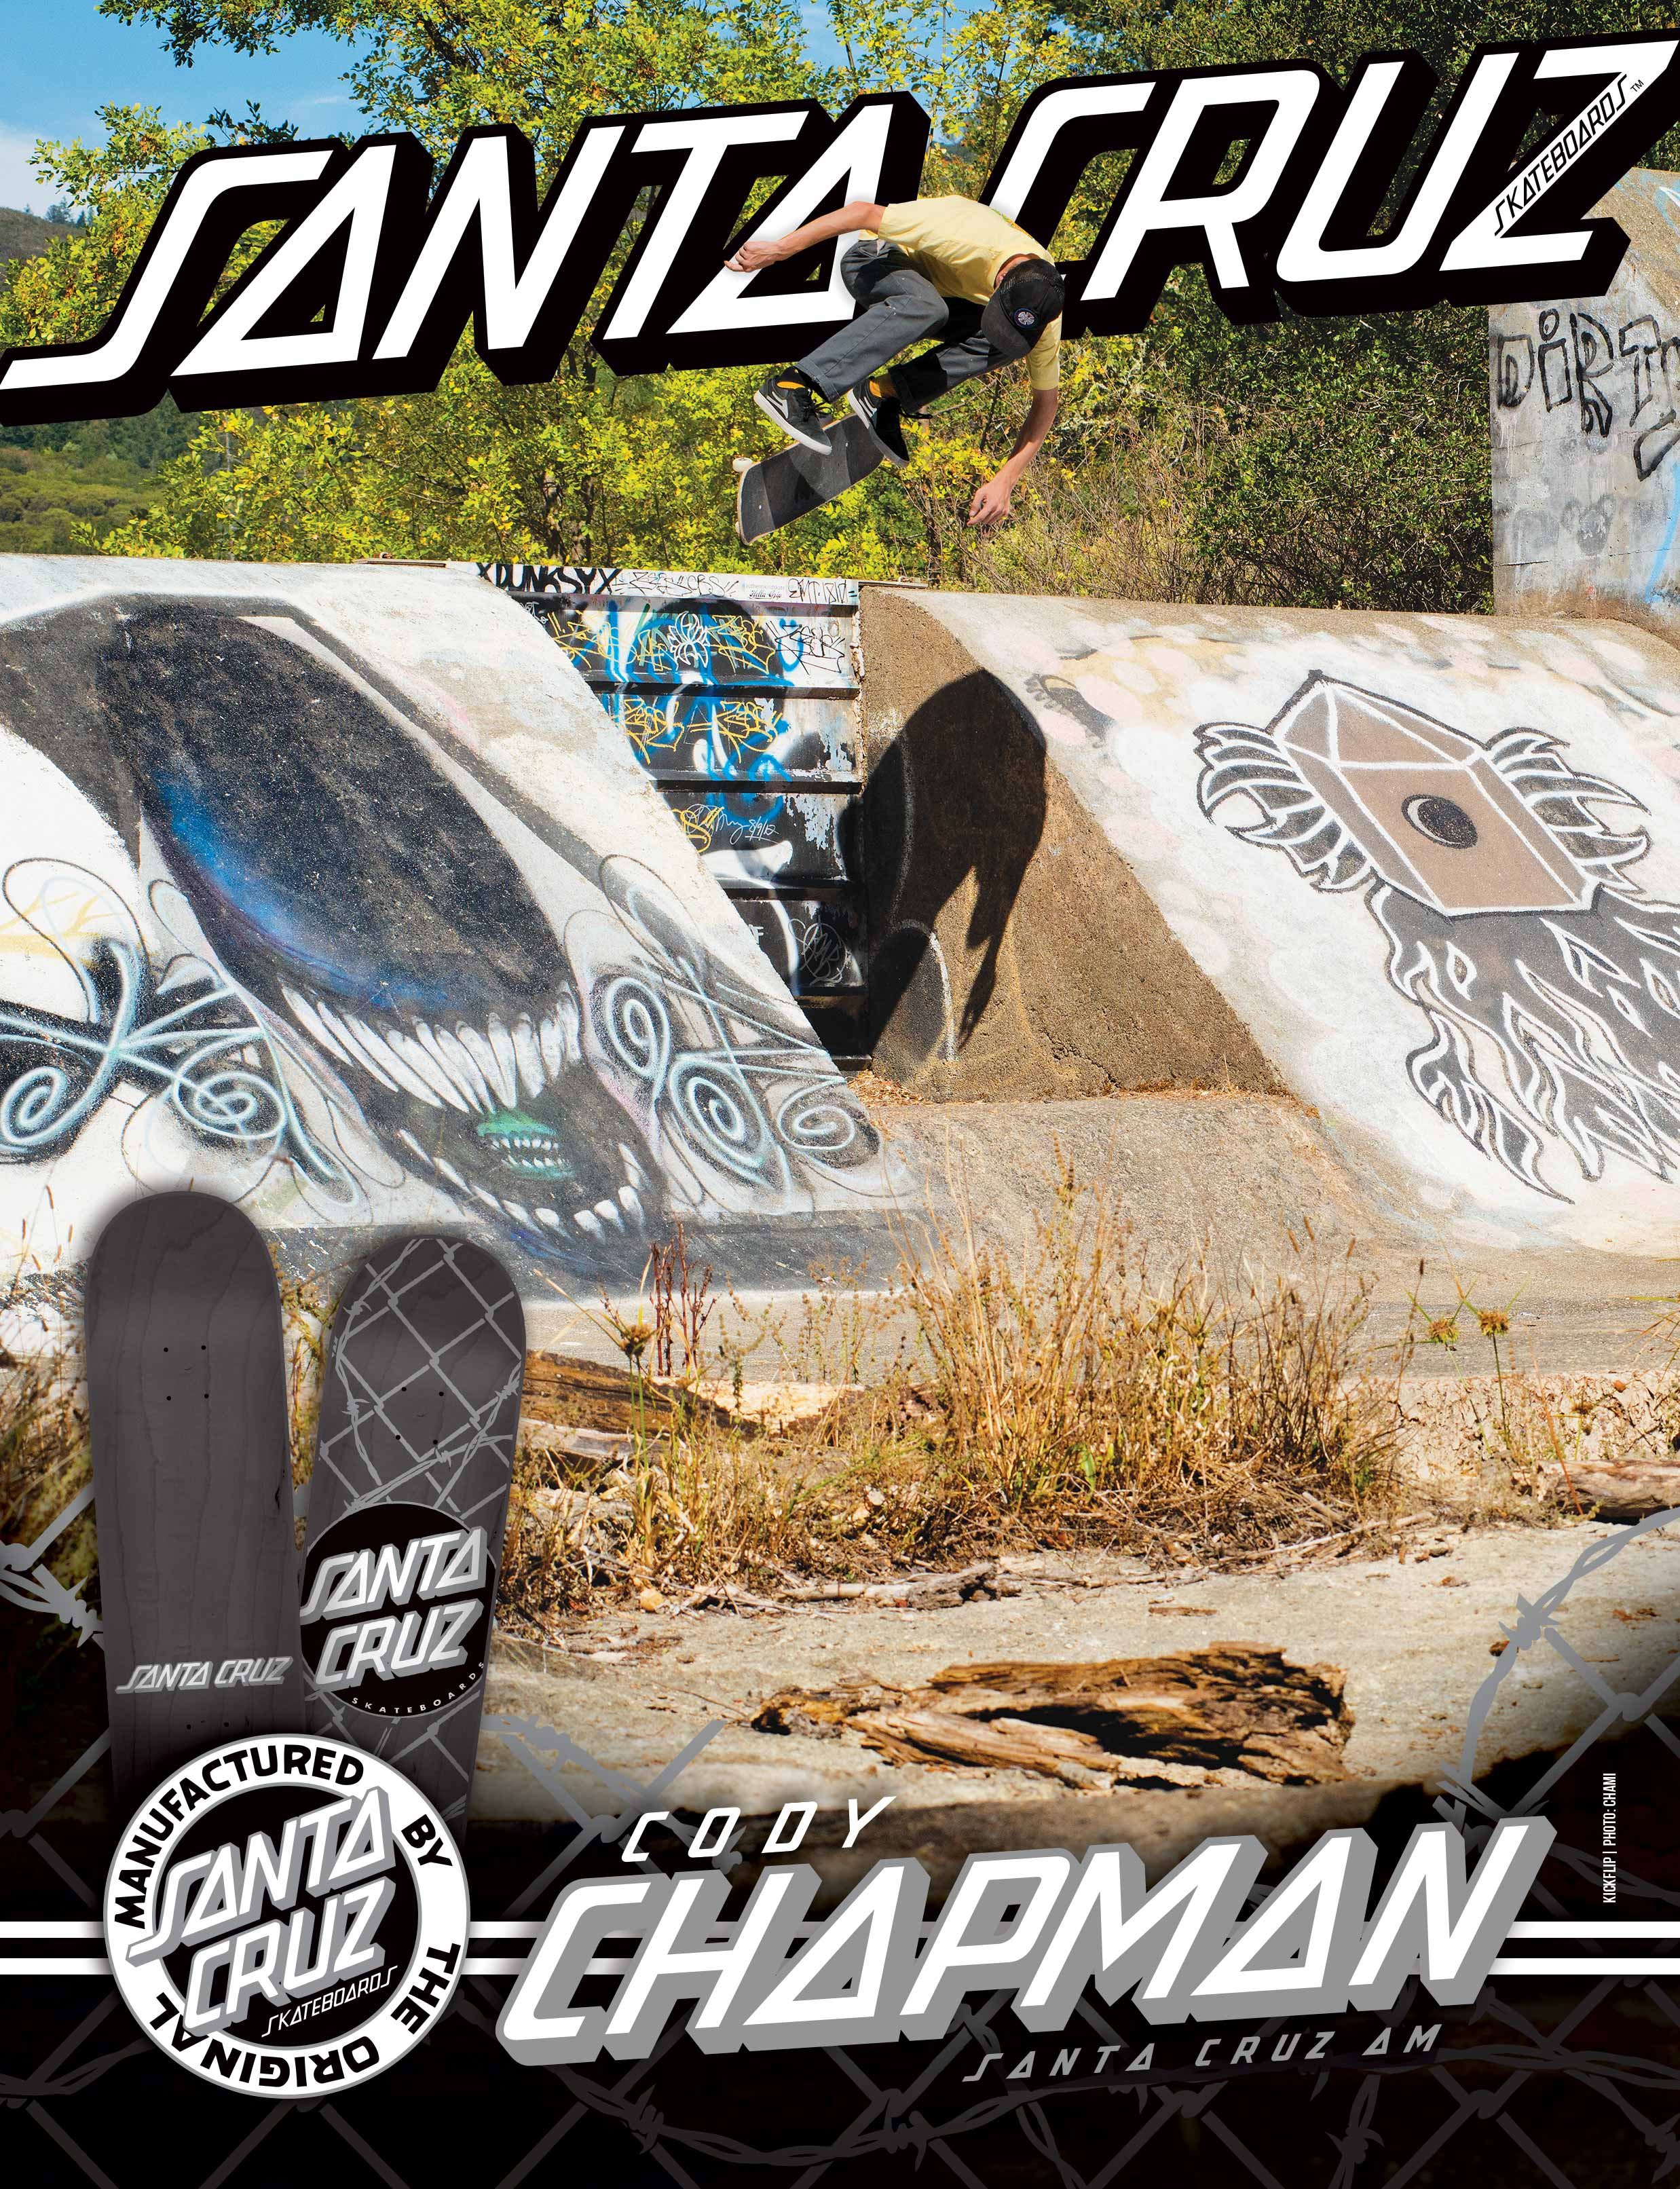 SANTA CRUZ SKATEBOARDS - CHAPMAN